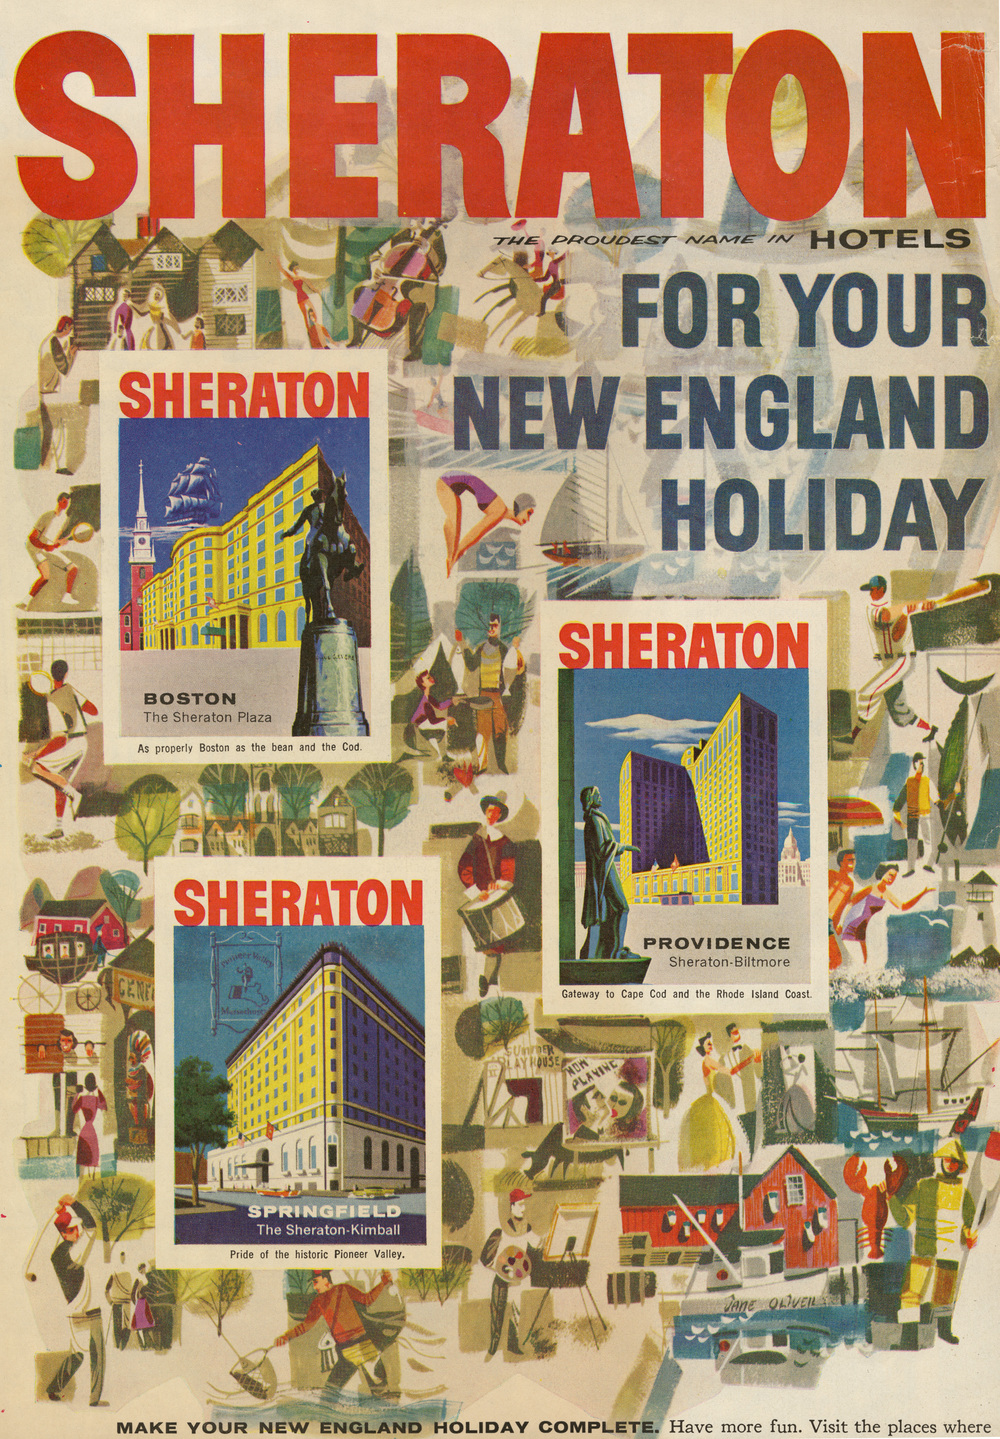 Jane Oliver, Print ad for Sheraton Hotels.